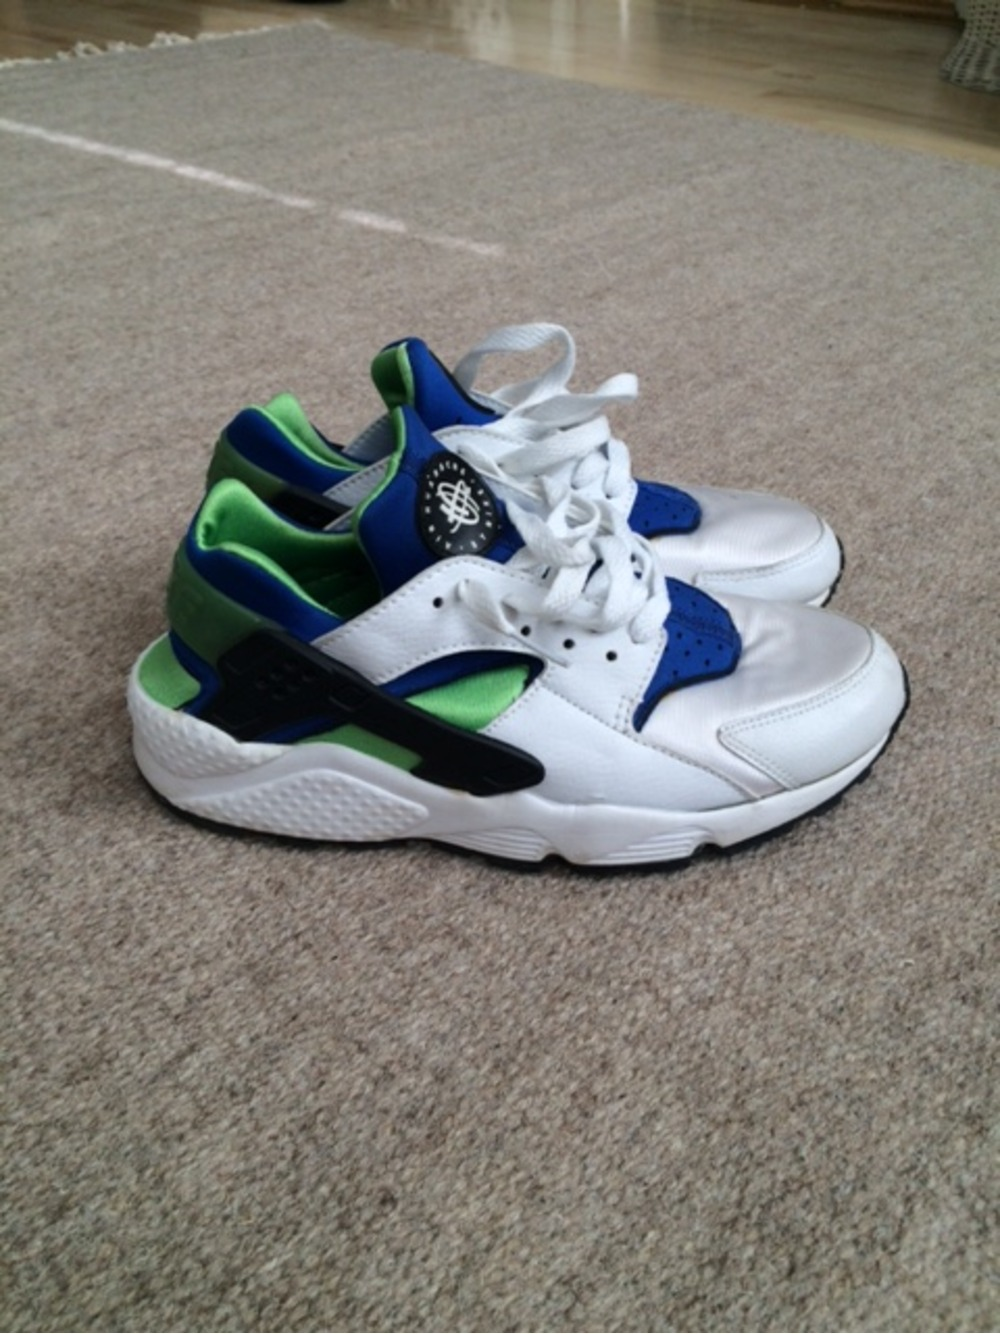 nike air huarache scream green 1999 us8 eur41 725551. Black Bedroom Furniture Sets. Home Design Ideas